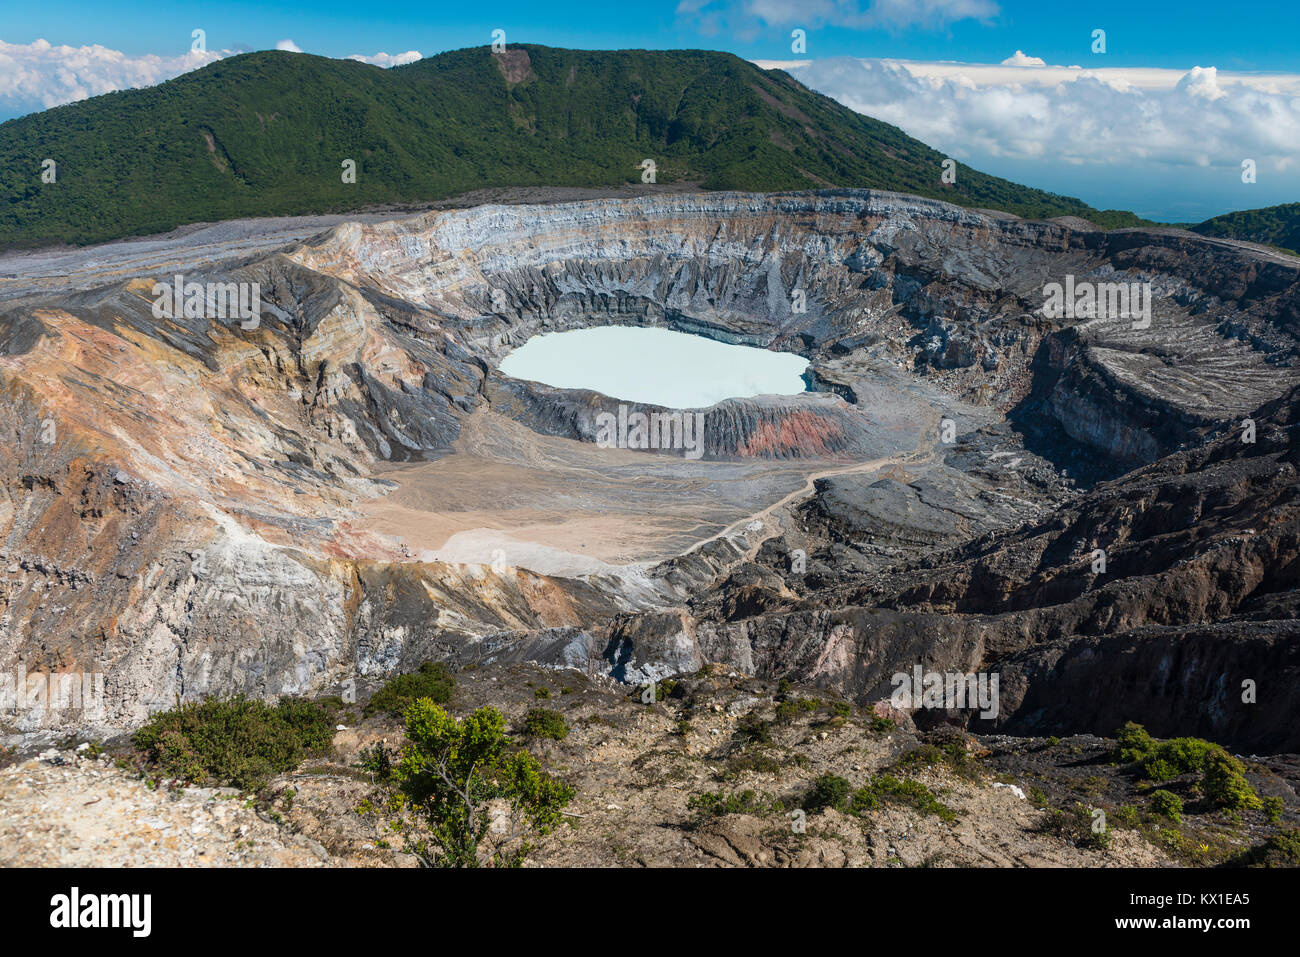 Caldera with crater lake, Poas Volcano, National Park Poas Volcano, Costa Rica Stock Photo